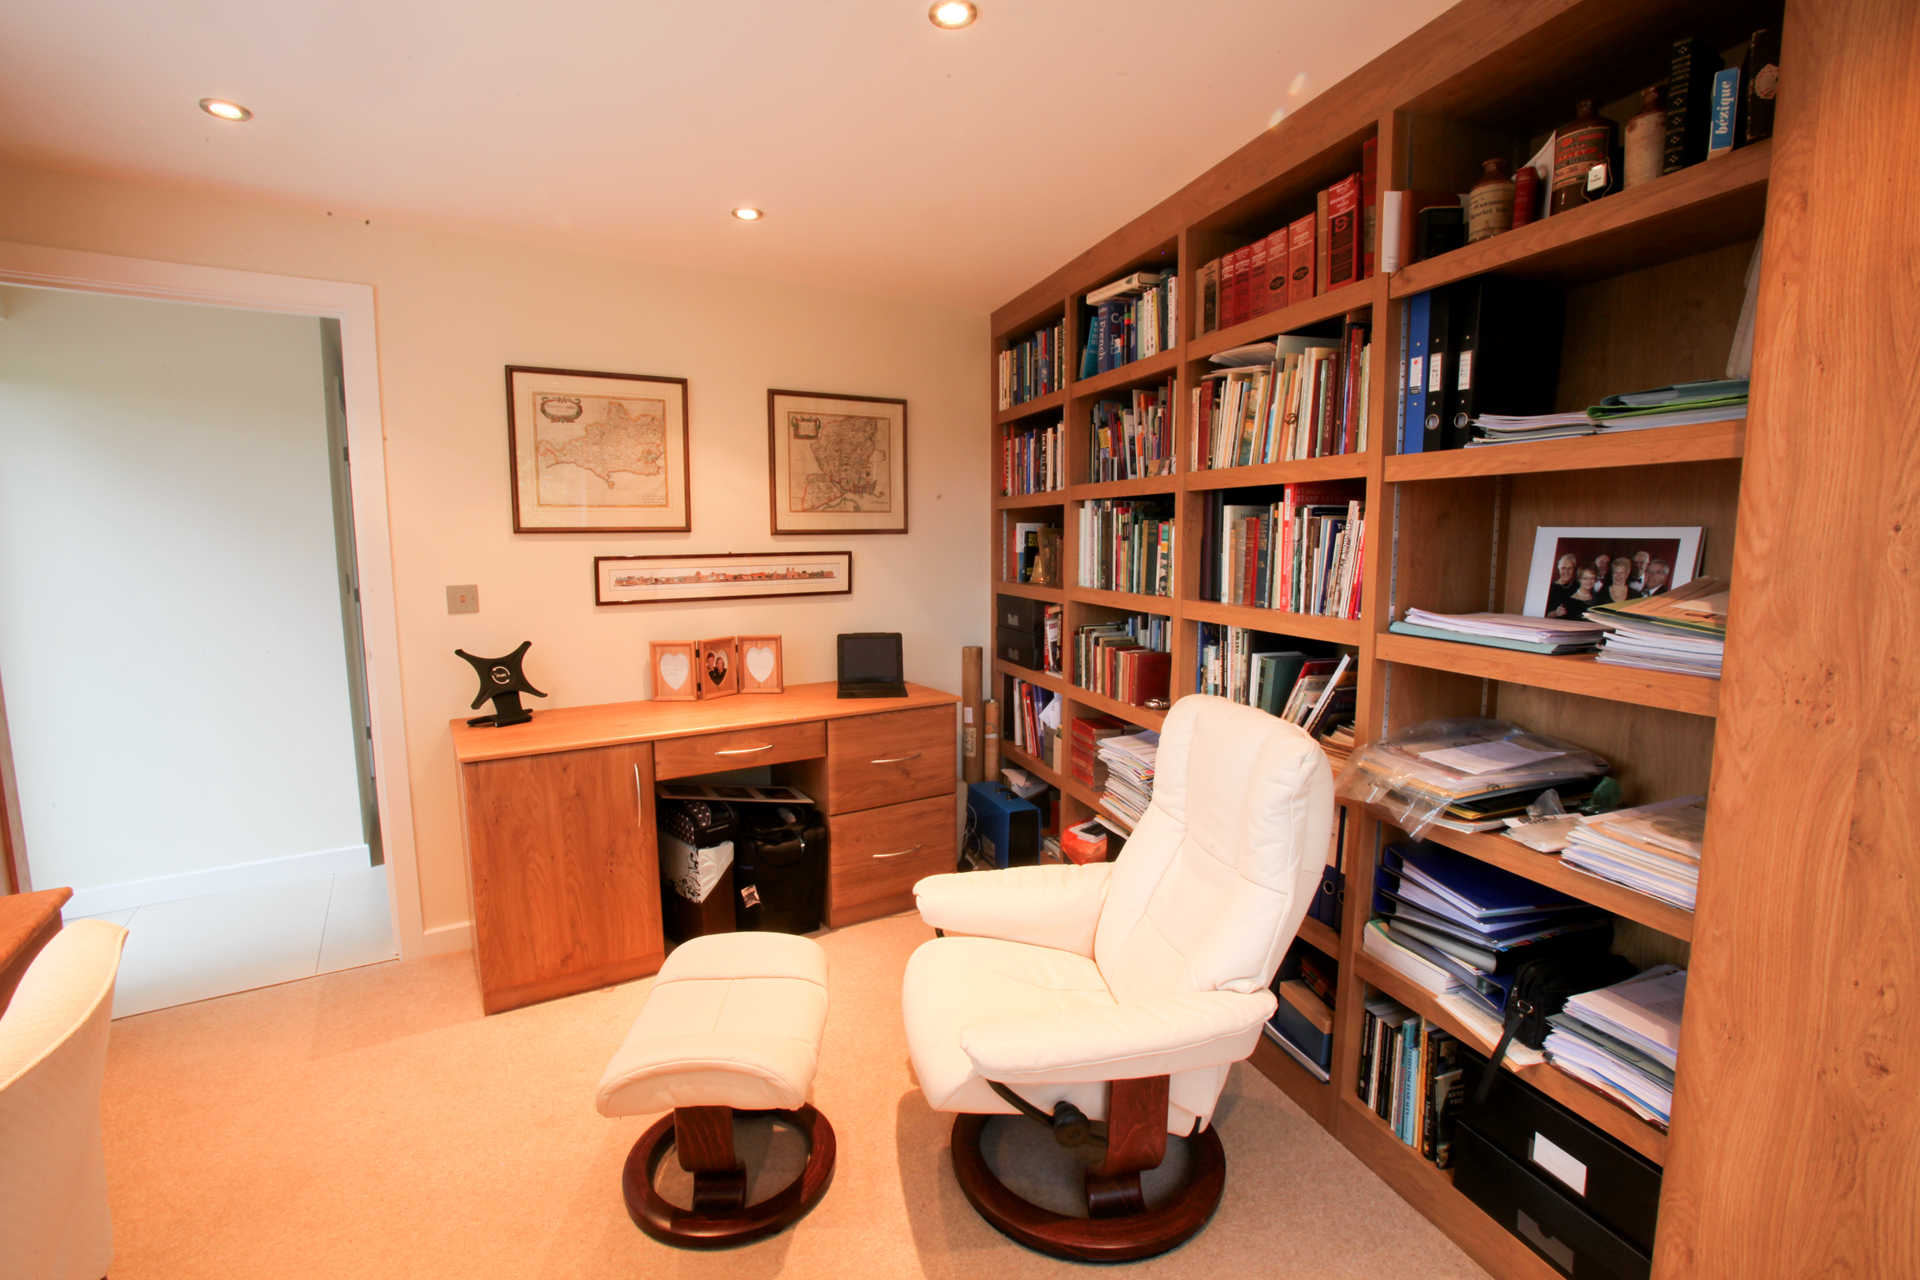 A study with a bookcase and desk